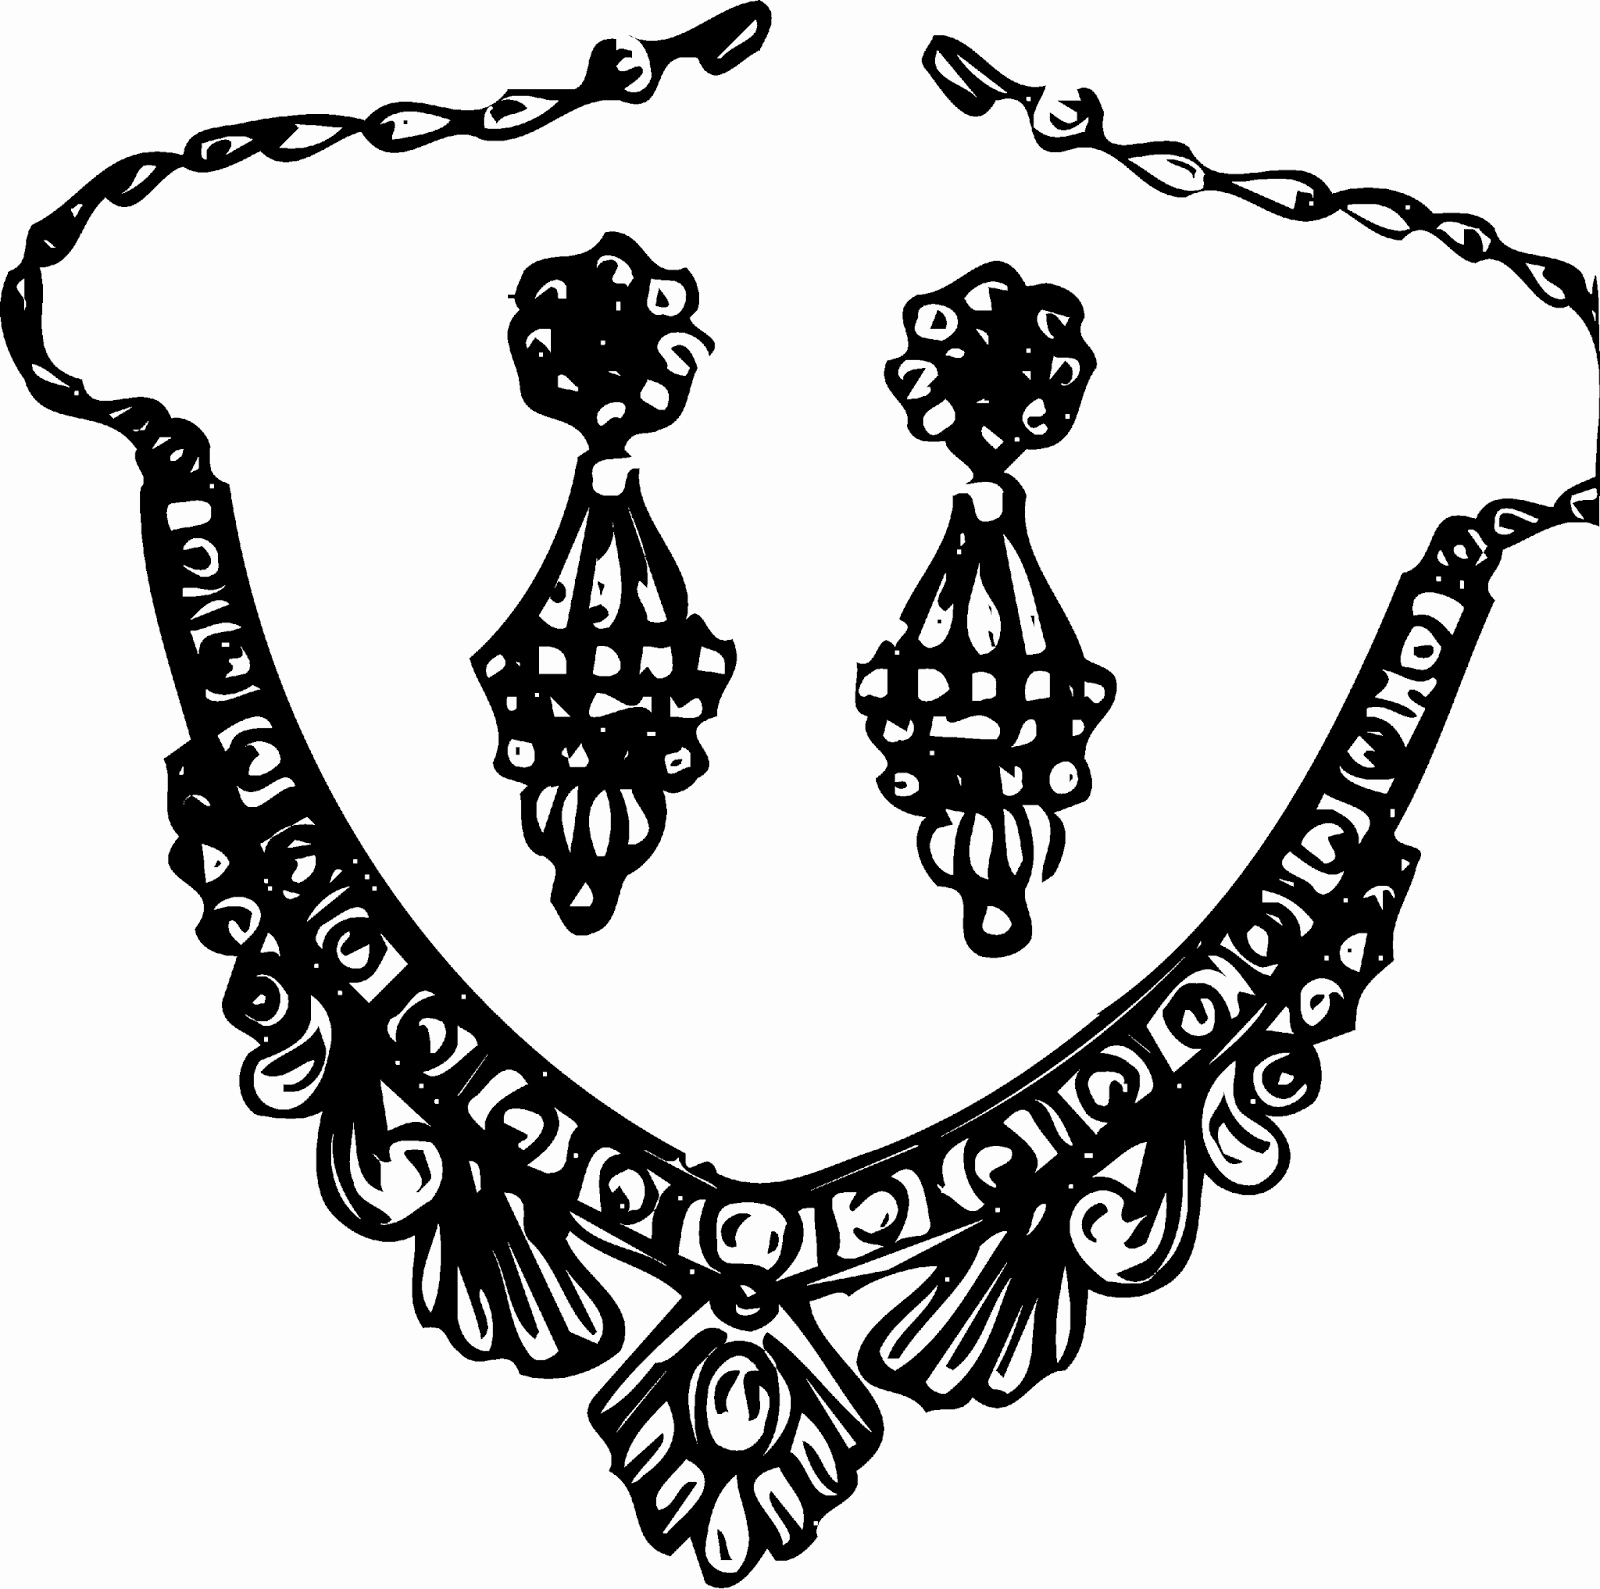 Jewelry black and white clipart clip art freeuse library Necklace black and white clipart Awesome Jewellery Black And White ... clip art freeuse library